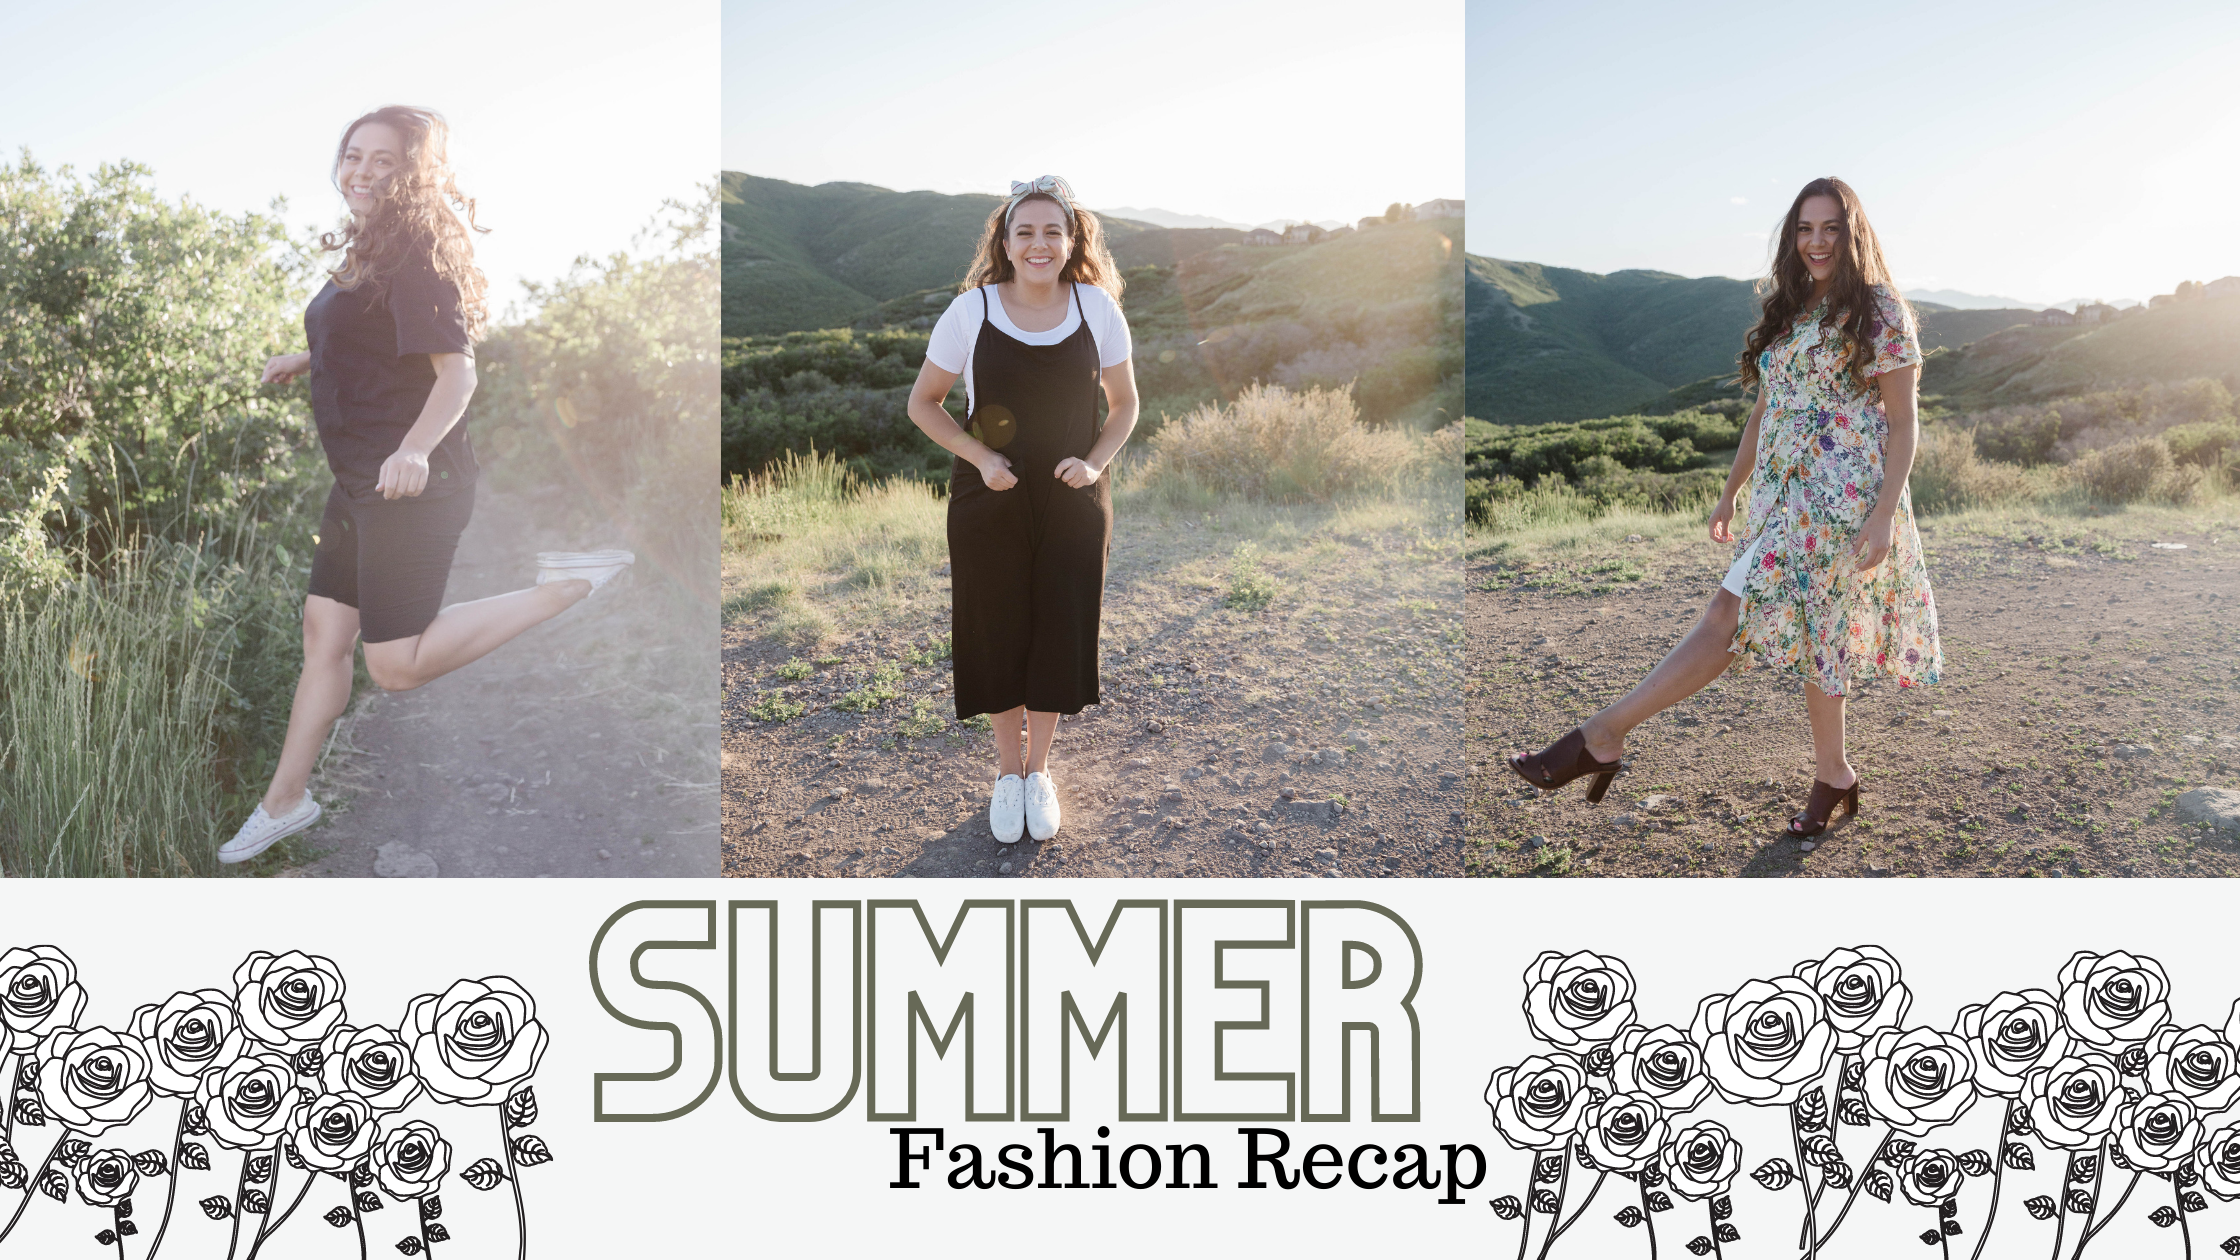 Summer Fashion 2020 Recap graphic